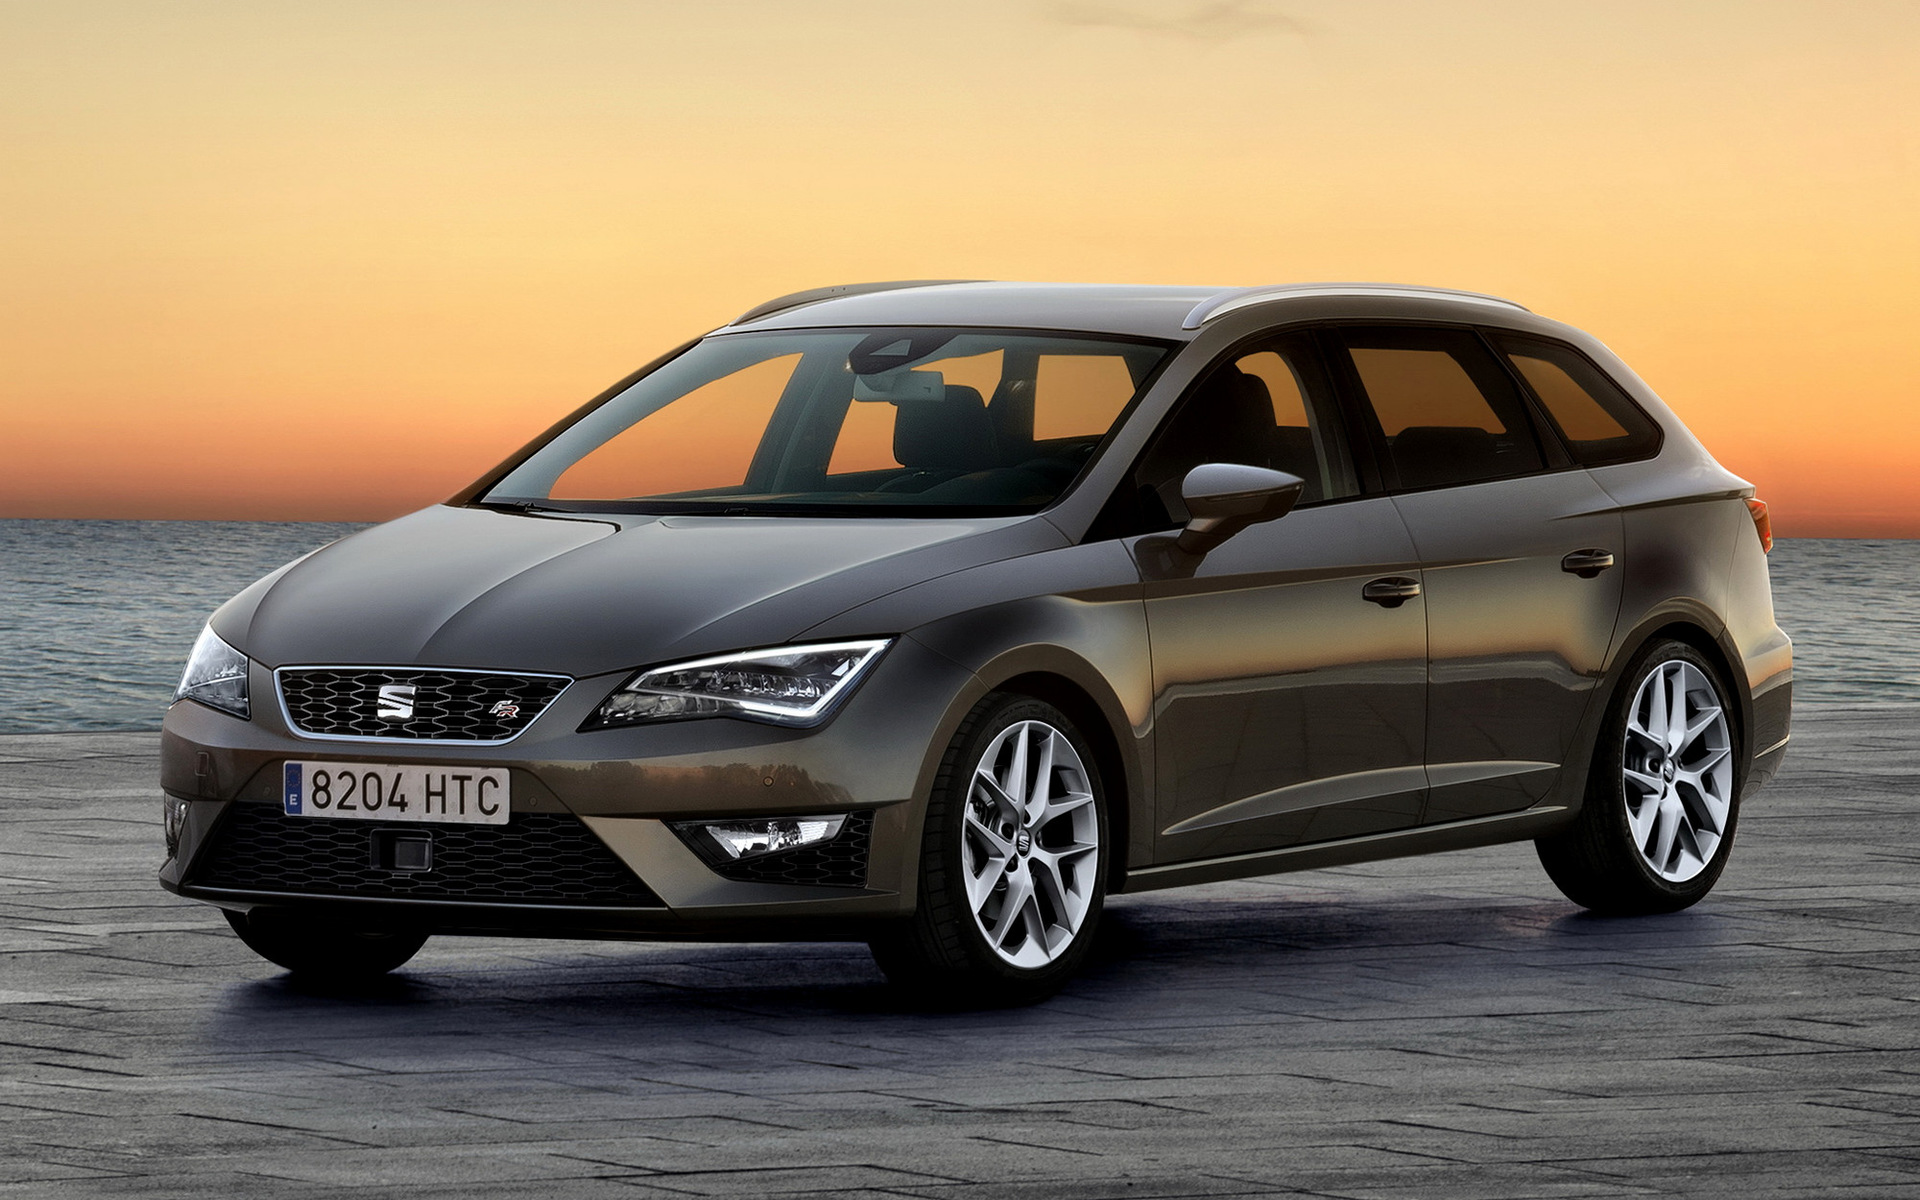 2013 seat leon st fr wallpapers and hd images car pixel. Black Bedroom Furniture Sets. Home Design Ideas